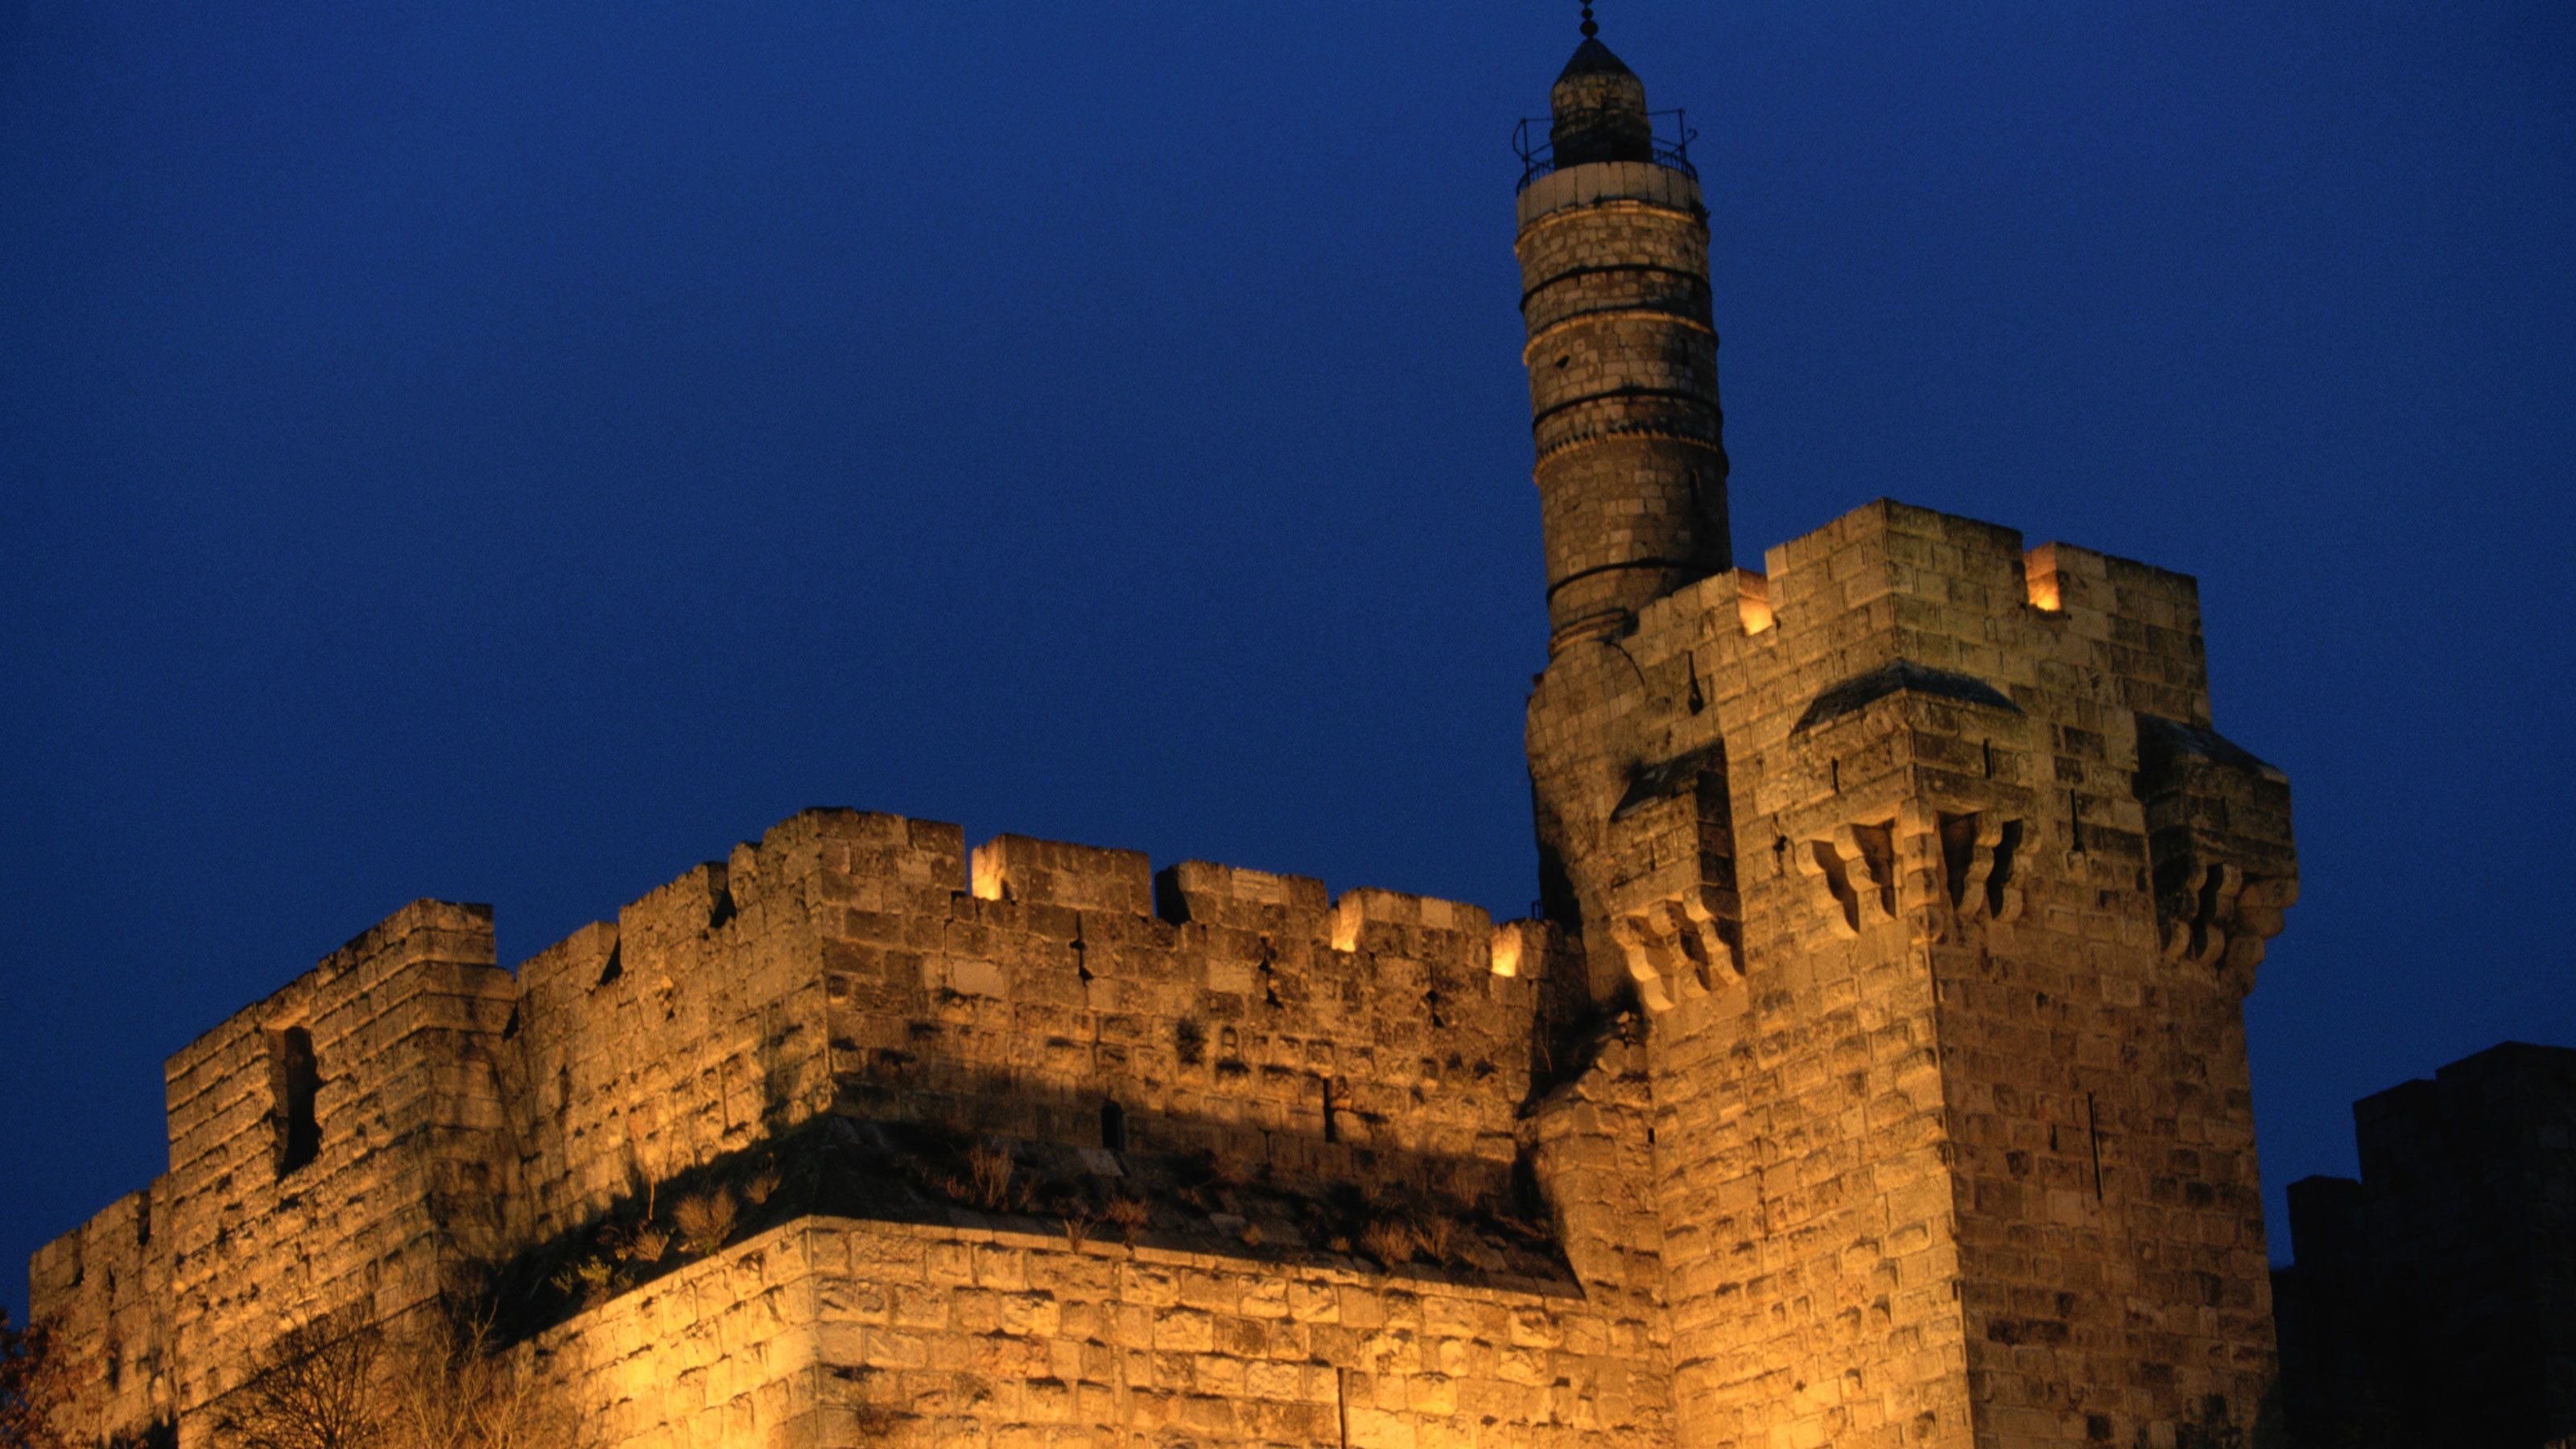 The tower of David in Jersualem